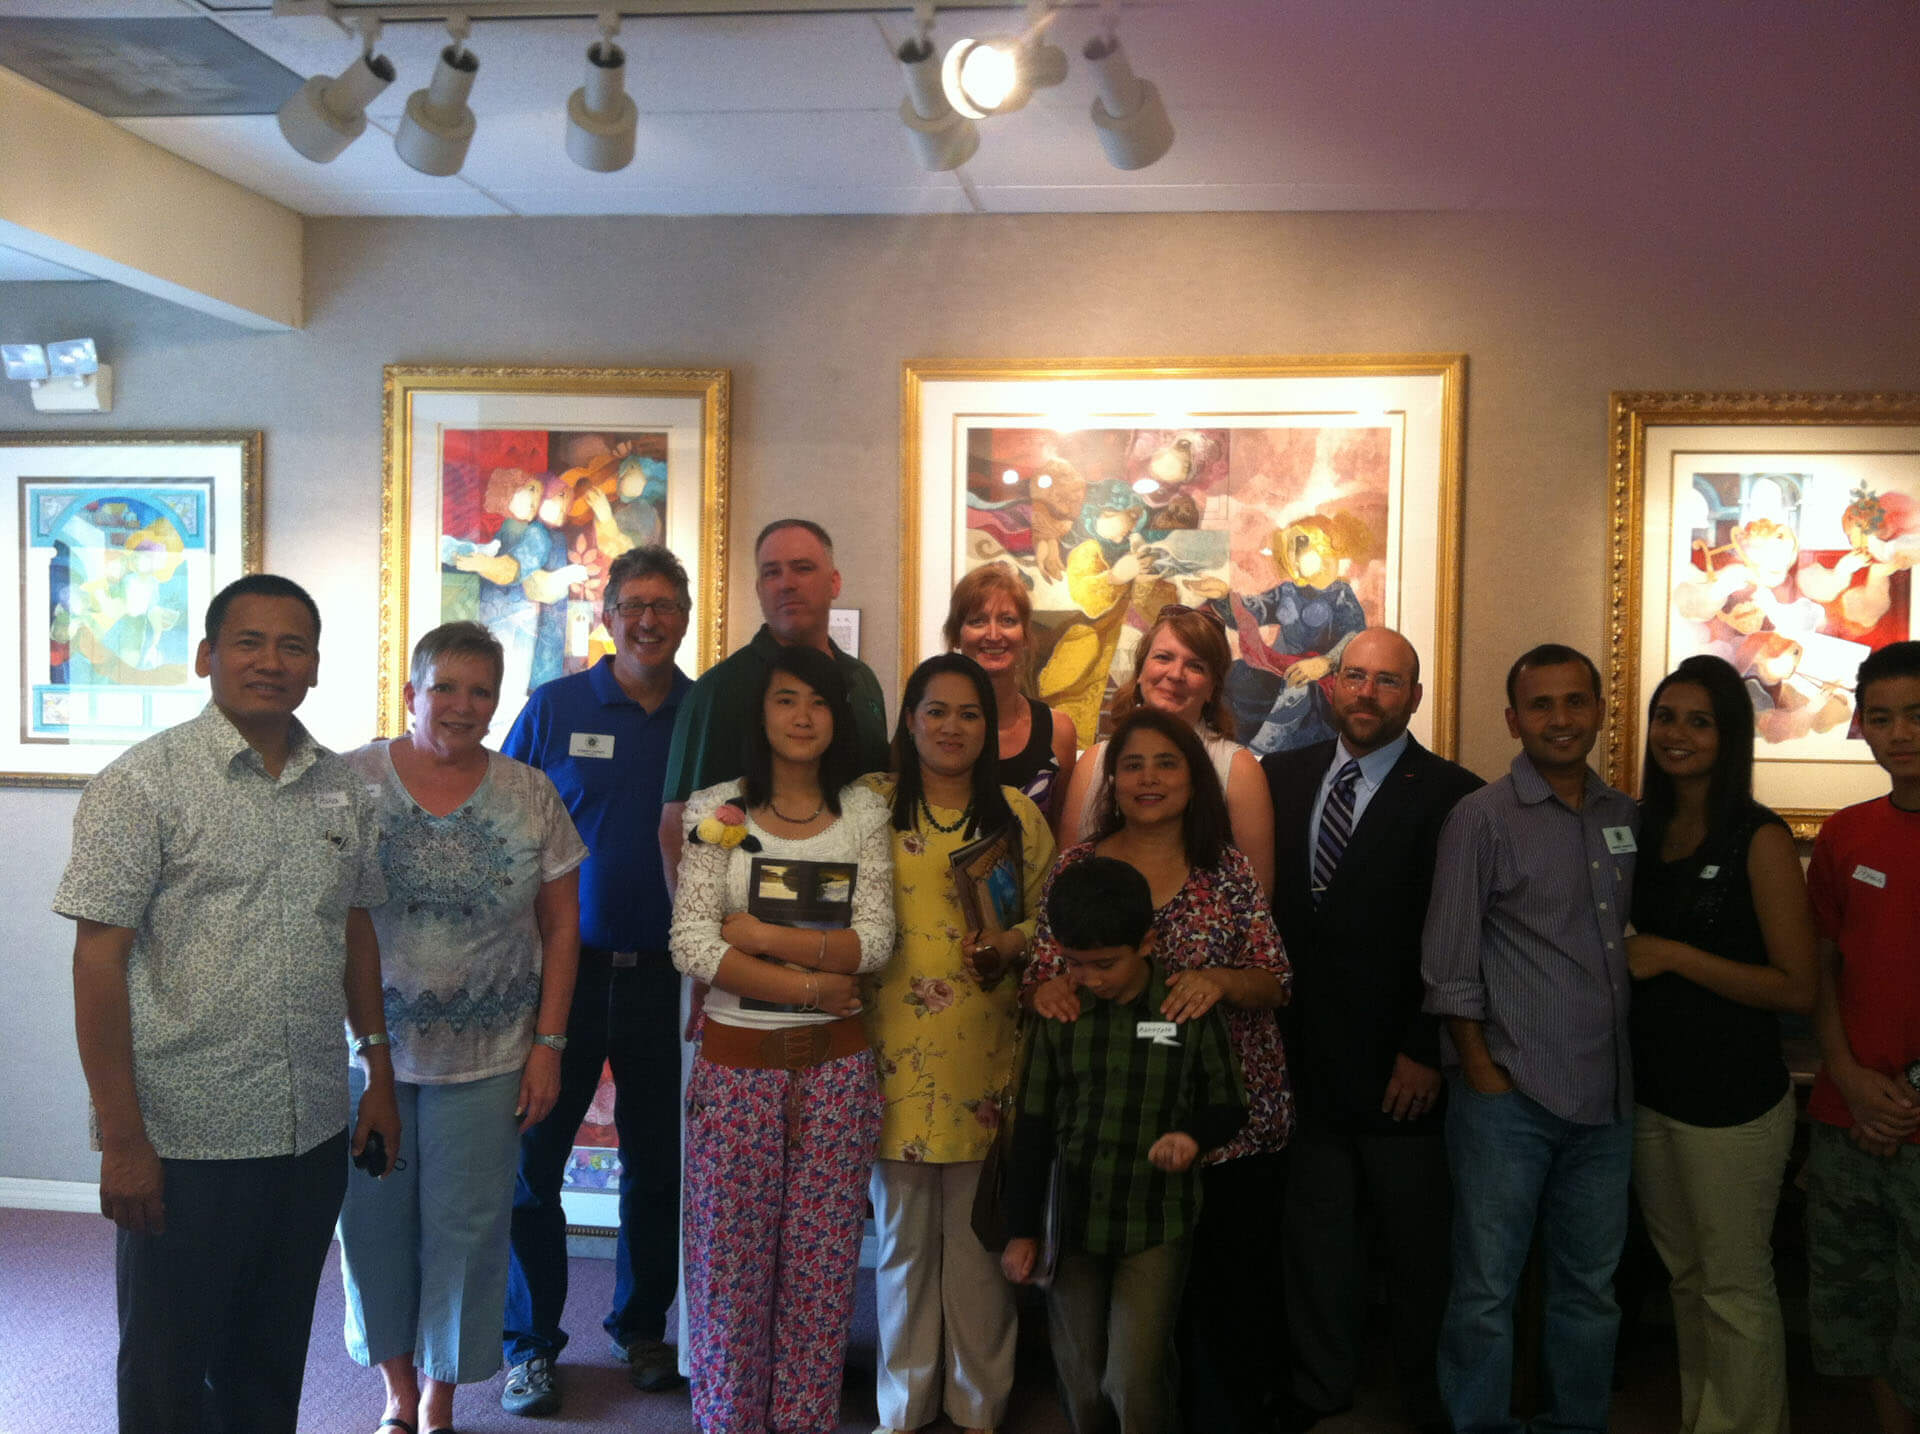 Art fundraiser for Nepal at Nuance Galleries